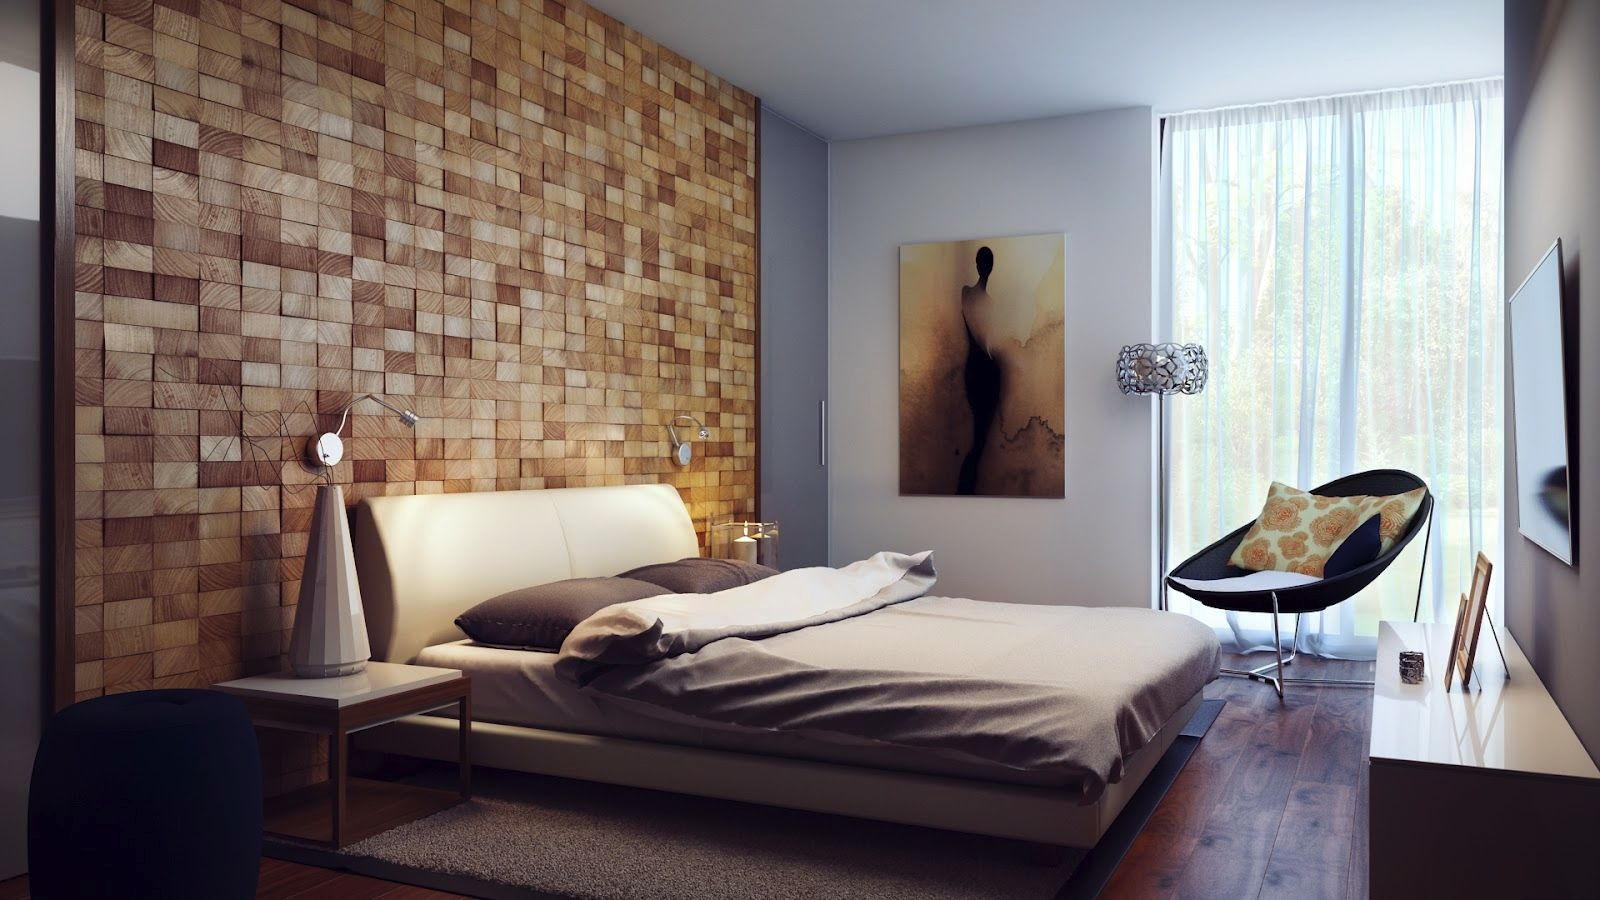 20 Bedrooms with Wooden Panel Walls  Block wall